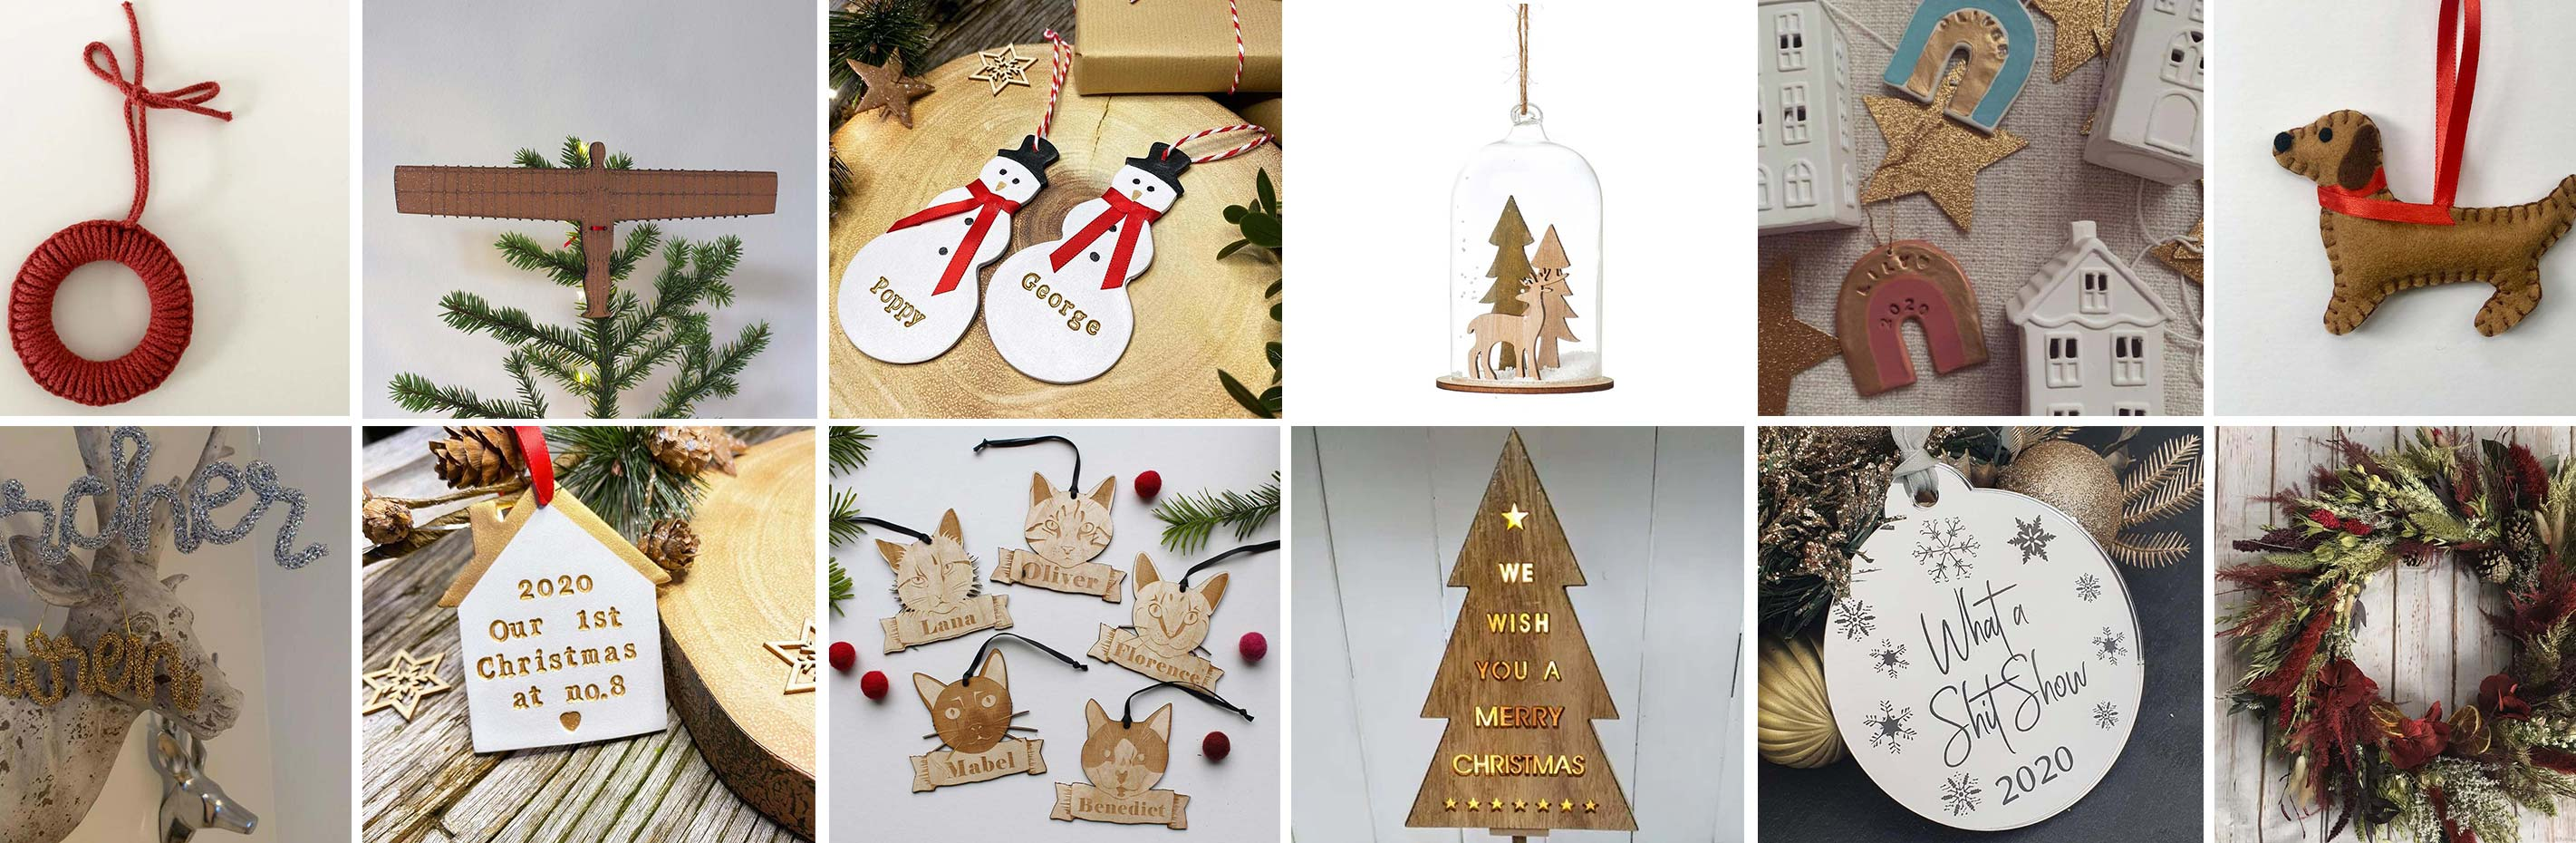 Shop Small, Shop Local: 36 Christmas Decorations from Independents Around the North East